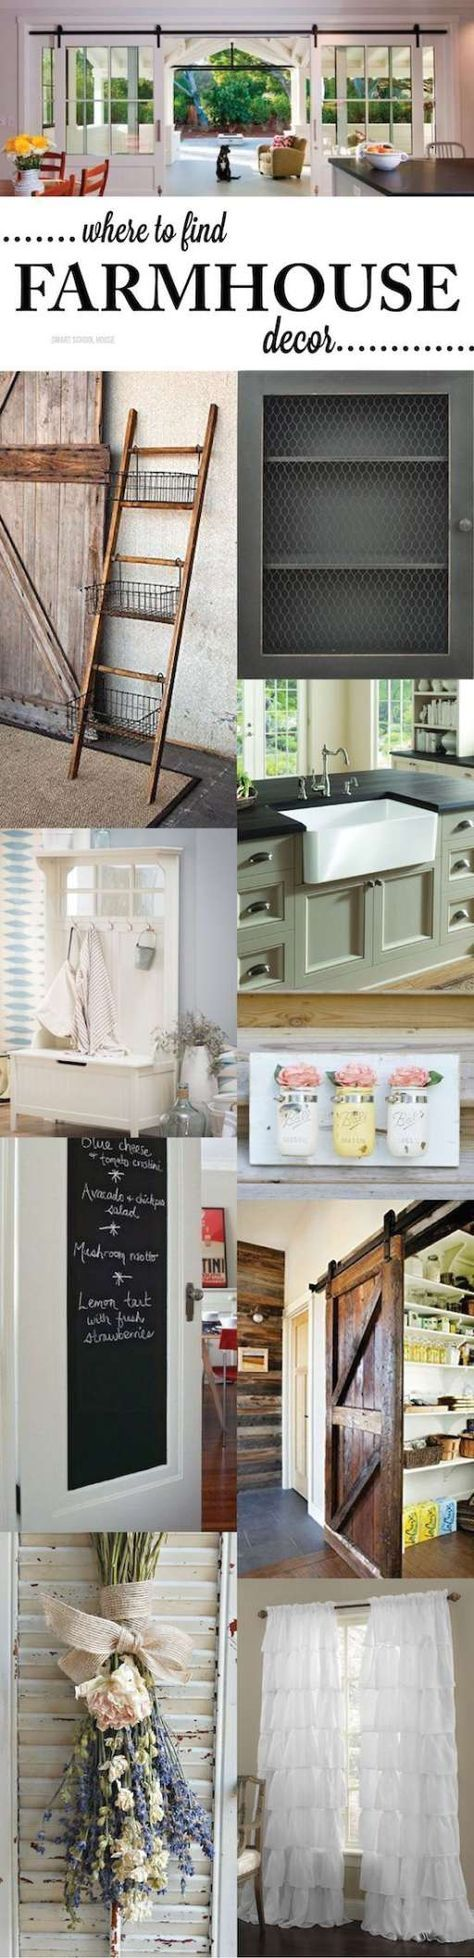 best for house images on pinterest home ideas sweet home and